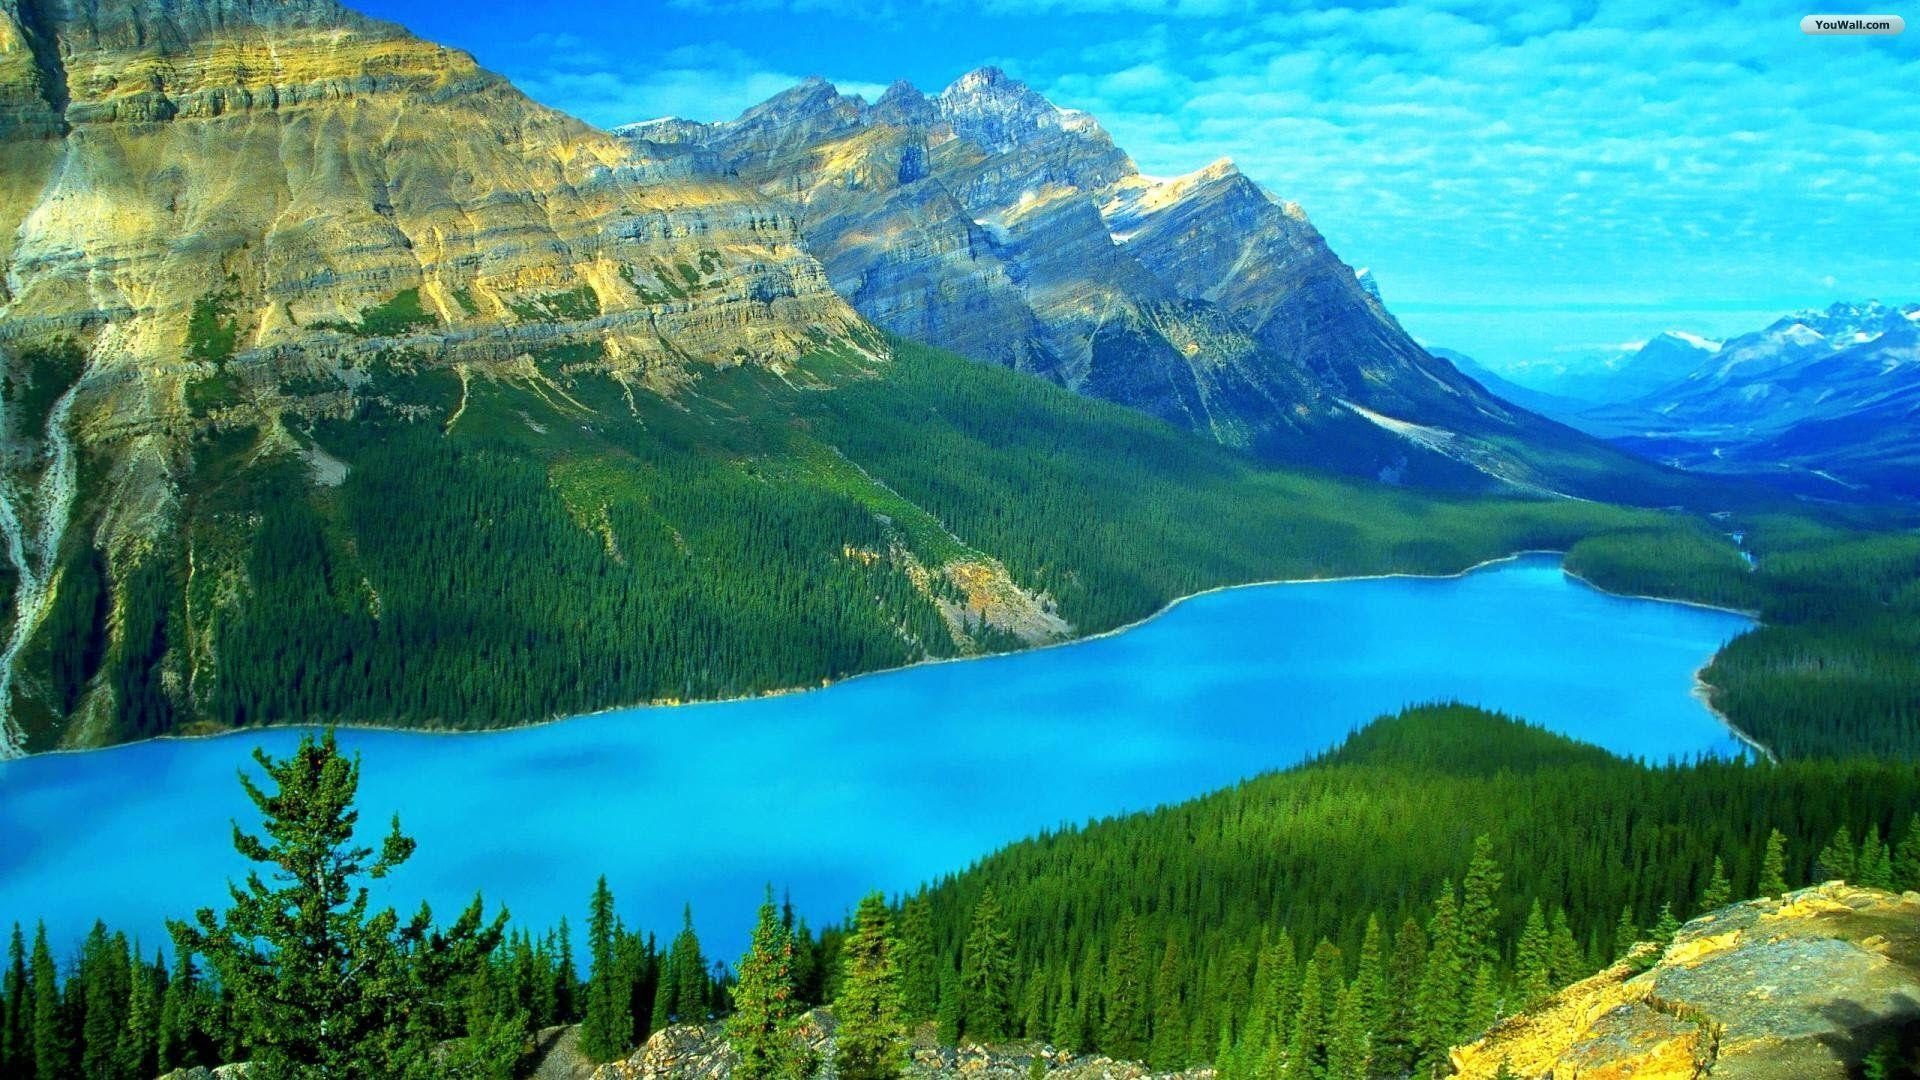 YouWall - Heavenly Blue Lake Wallpaper - wallpaper,wallpapers,free ...